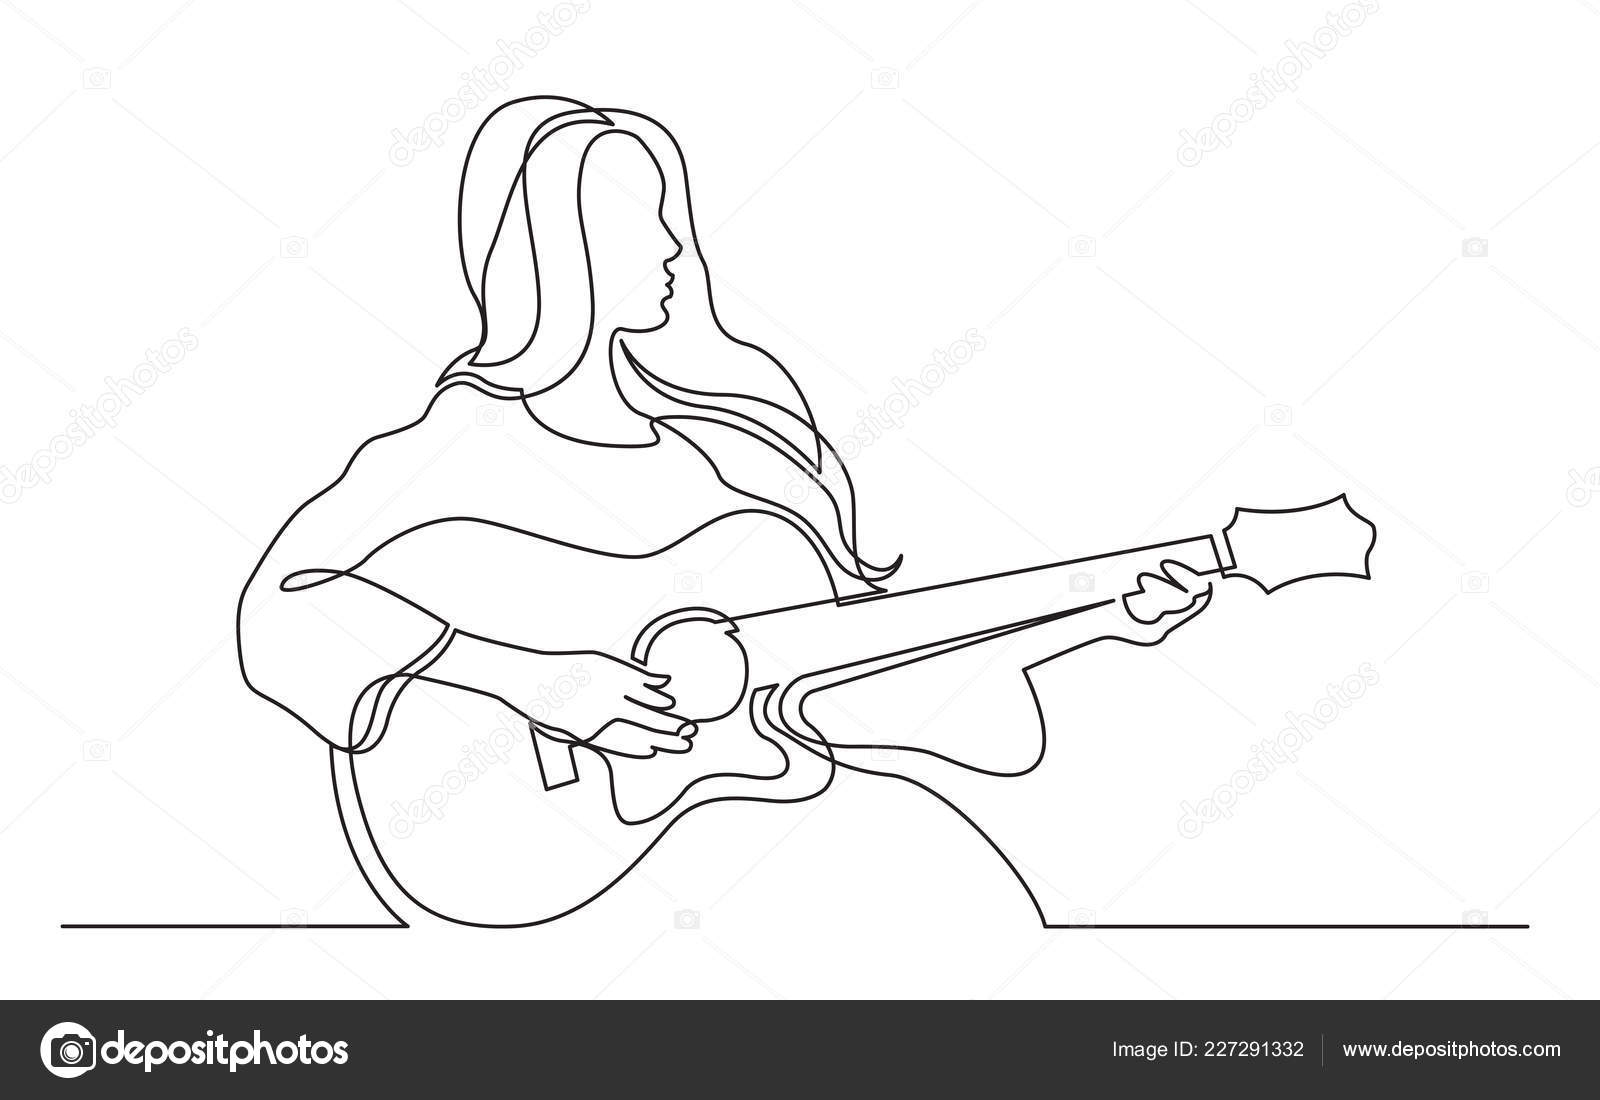 Line Drawing Of Girl Playing Guitar Continuous Line Drawing Girl Playing Acoustic Guitar Stock Vector C One Line Man 227291332